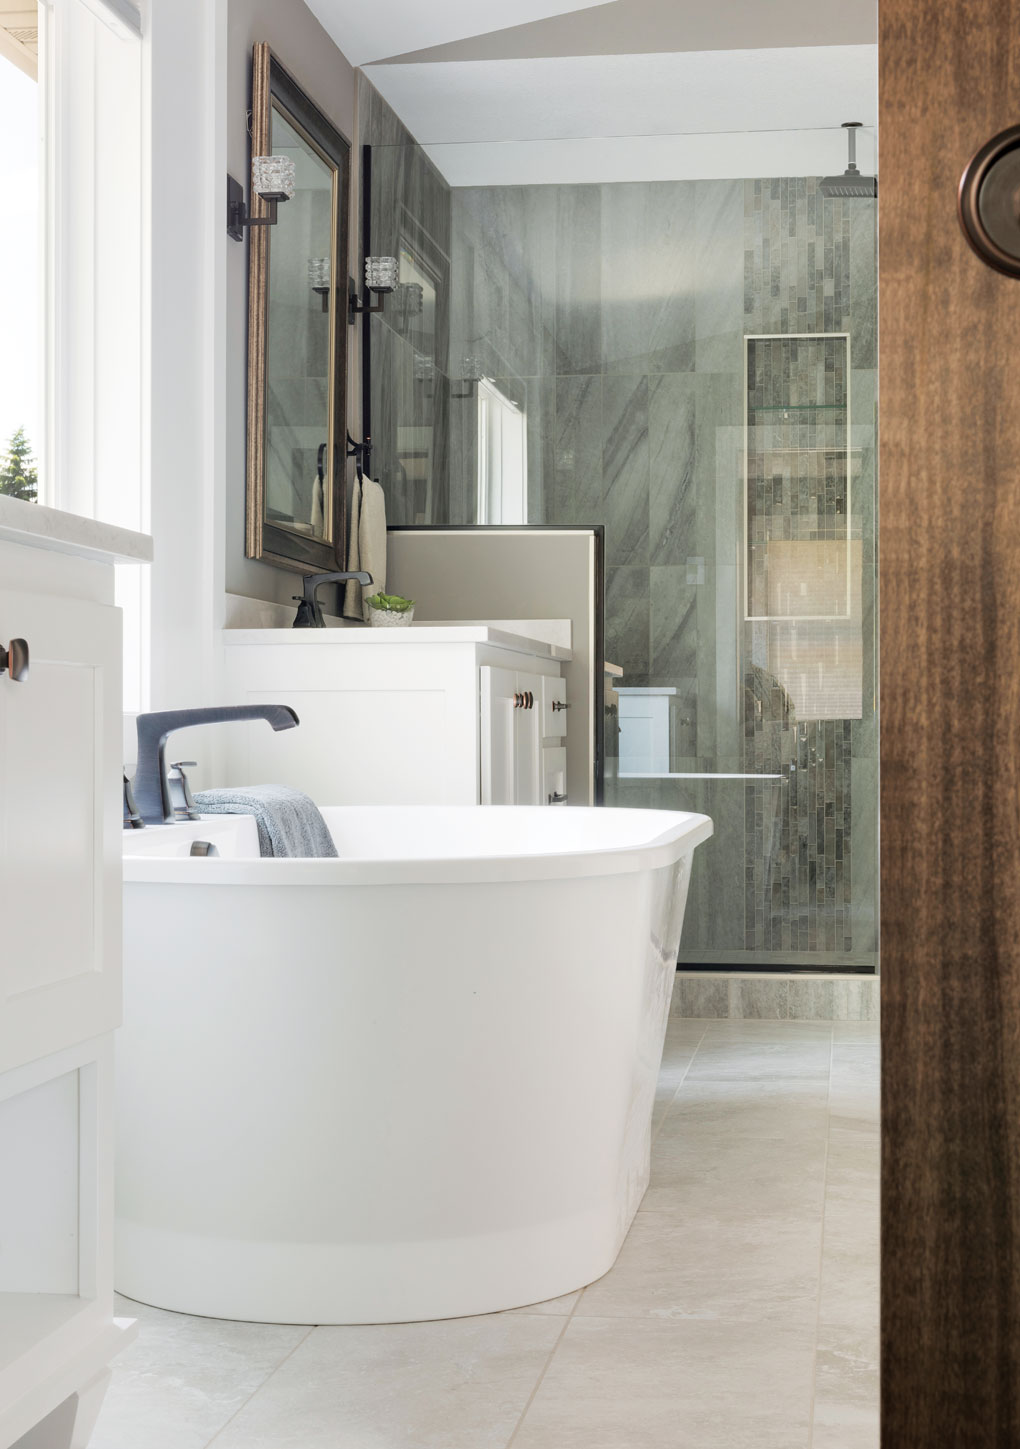 A master bath featuring a soaking tub, rain shower, decorative tile work and a vaulted ceiling.